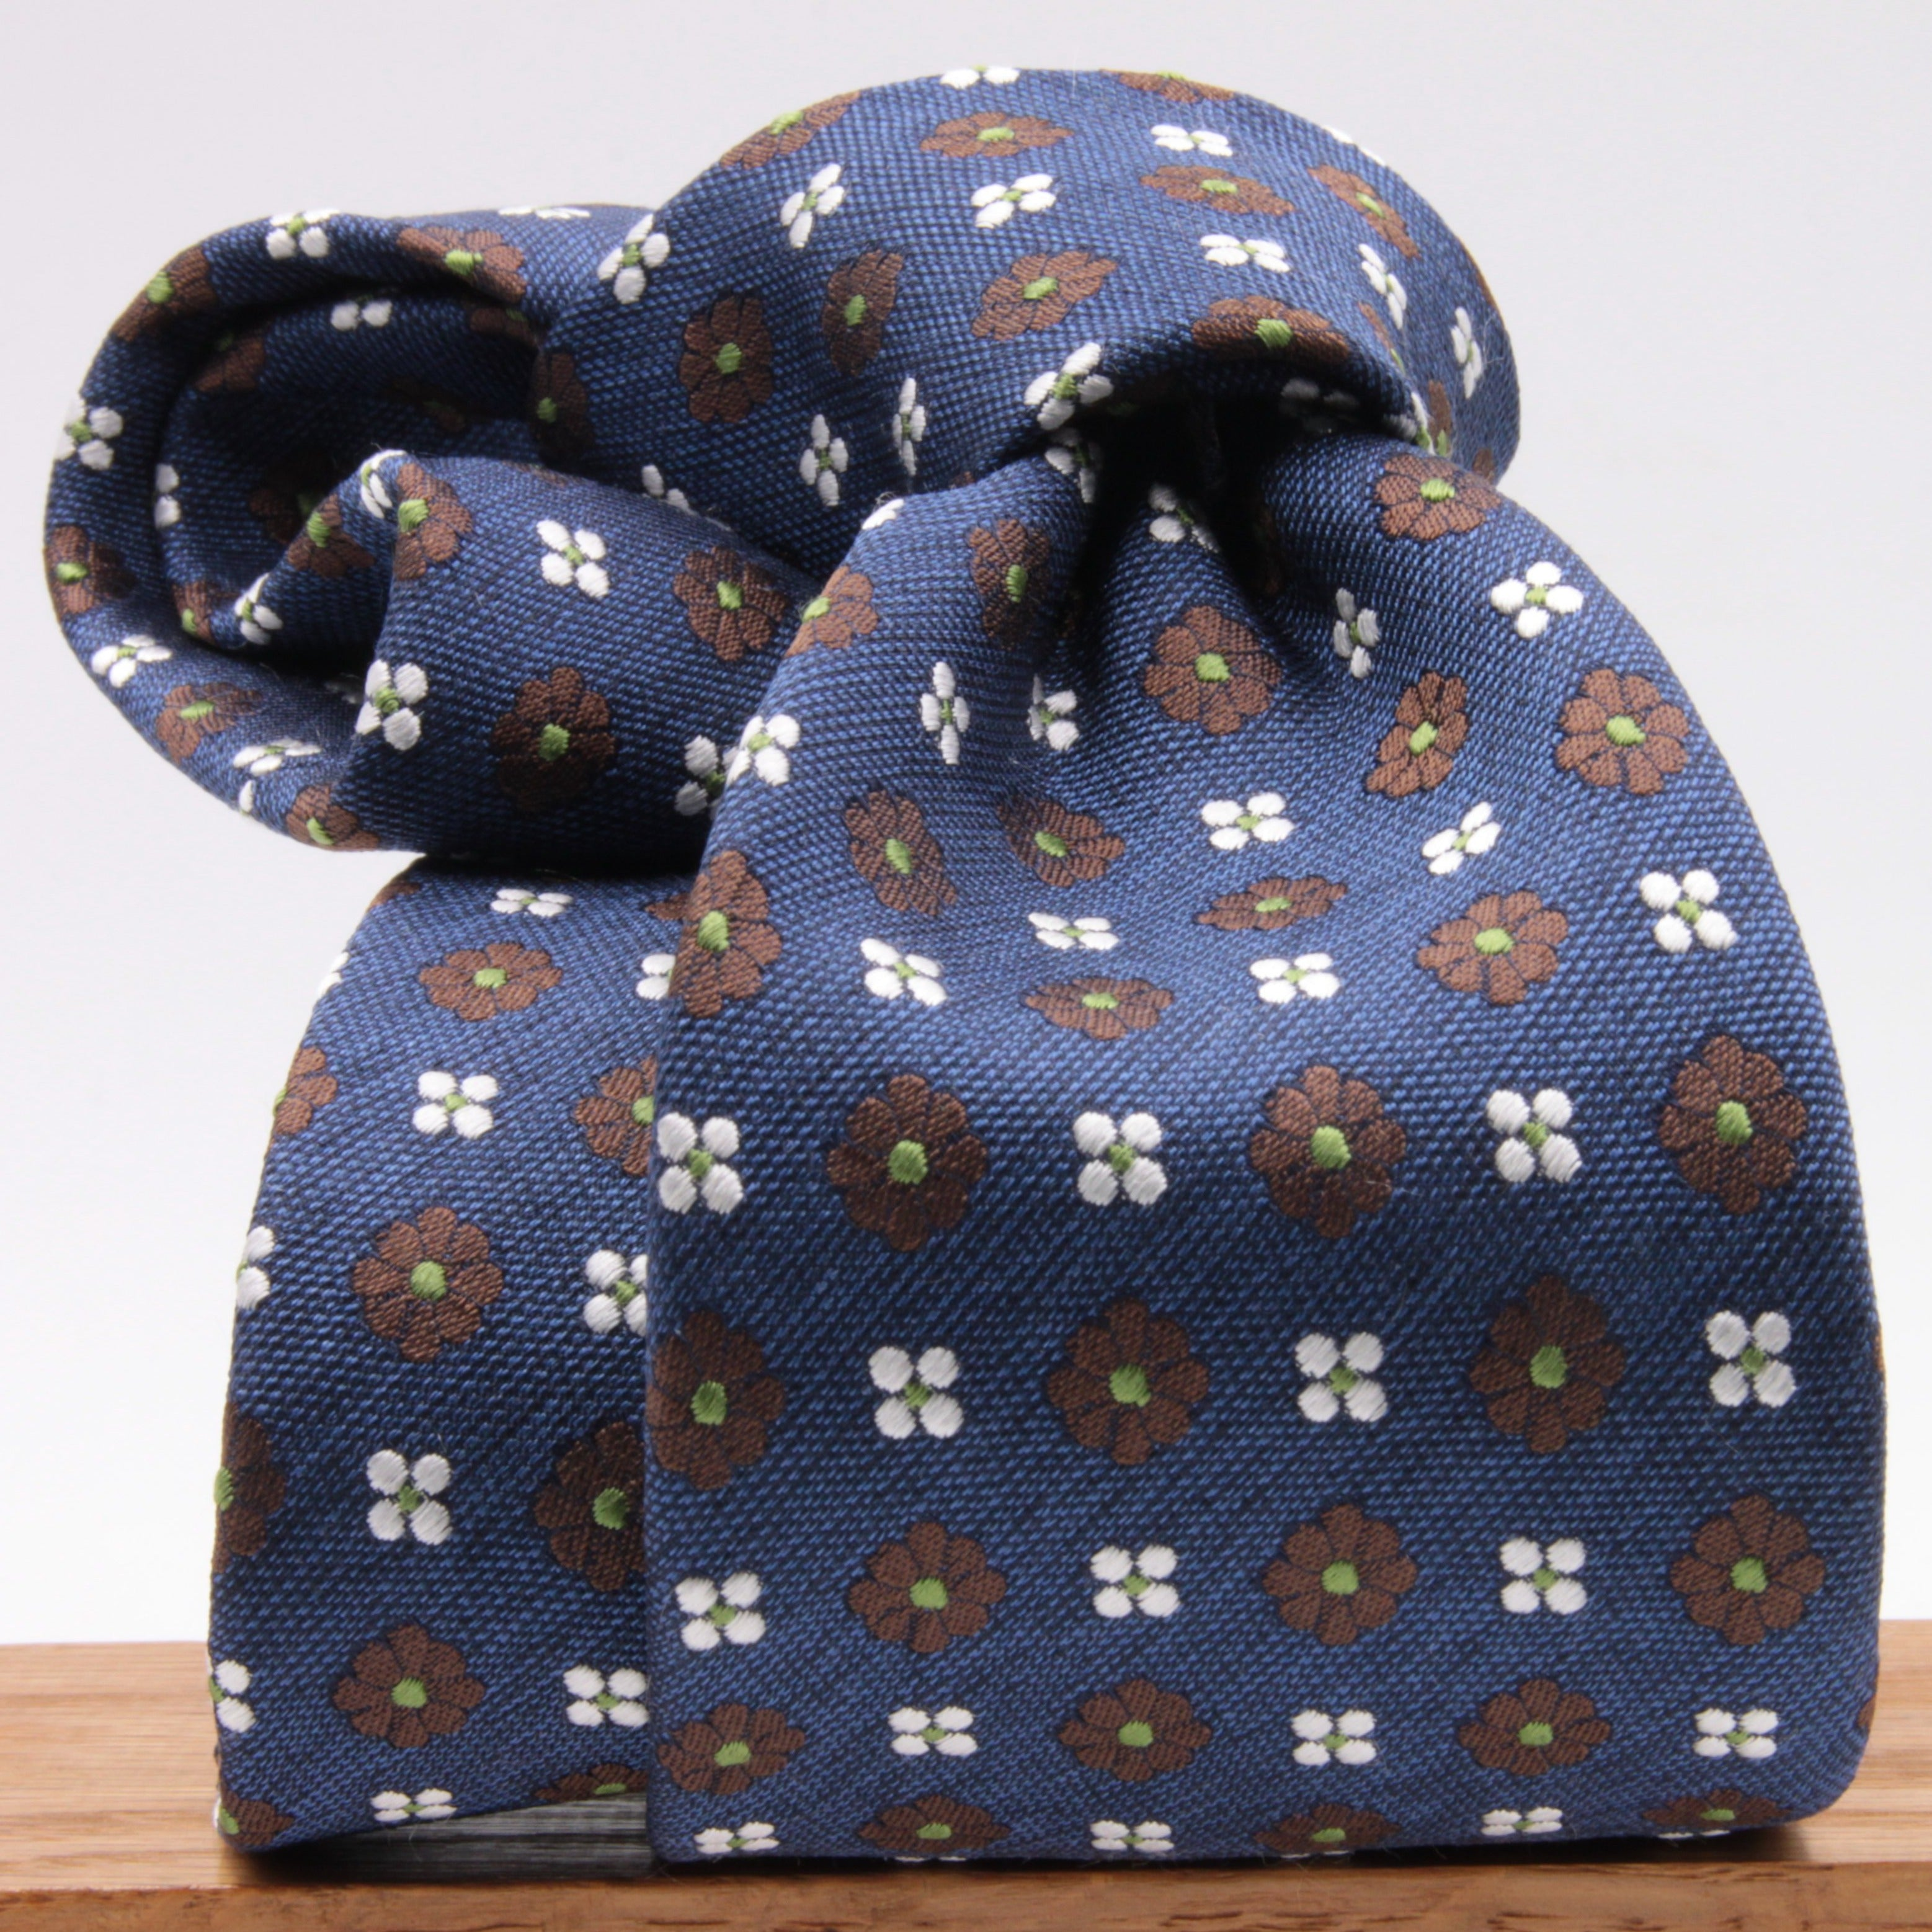 Cruciani & Bella 100% Silk Jacquard  Blue, Brown, Green and White Flowers Tie Handmade in Italy 8 cm x 150 cm #4438